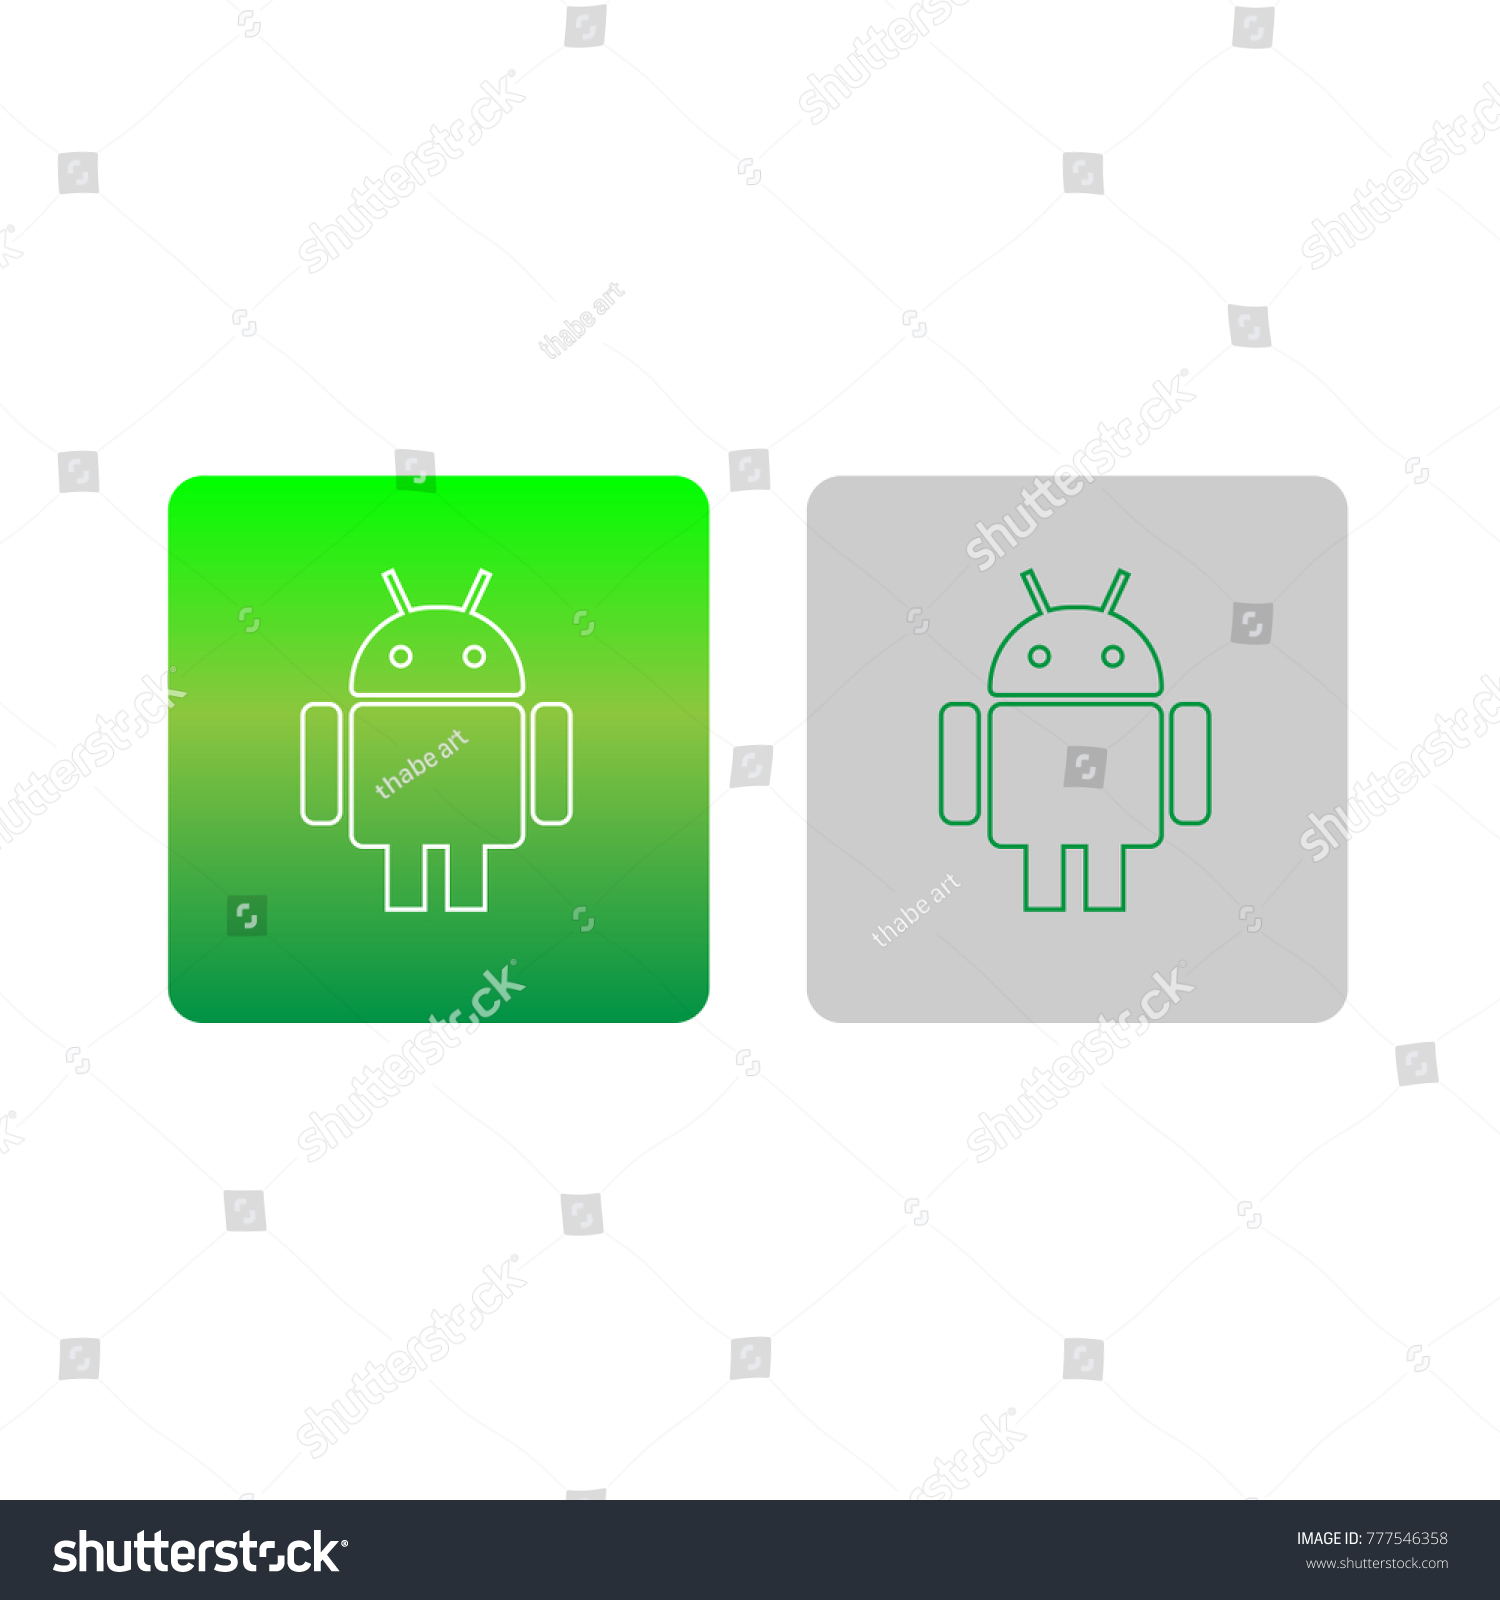 Icon Android Apps Vector Design Template Stock Vector (Royalty Free